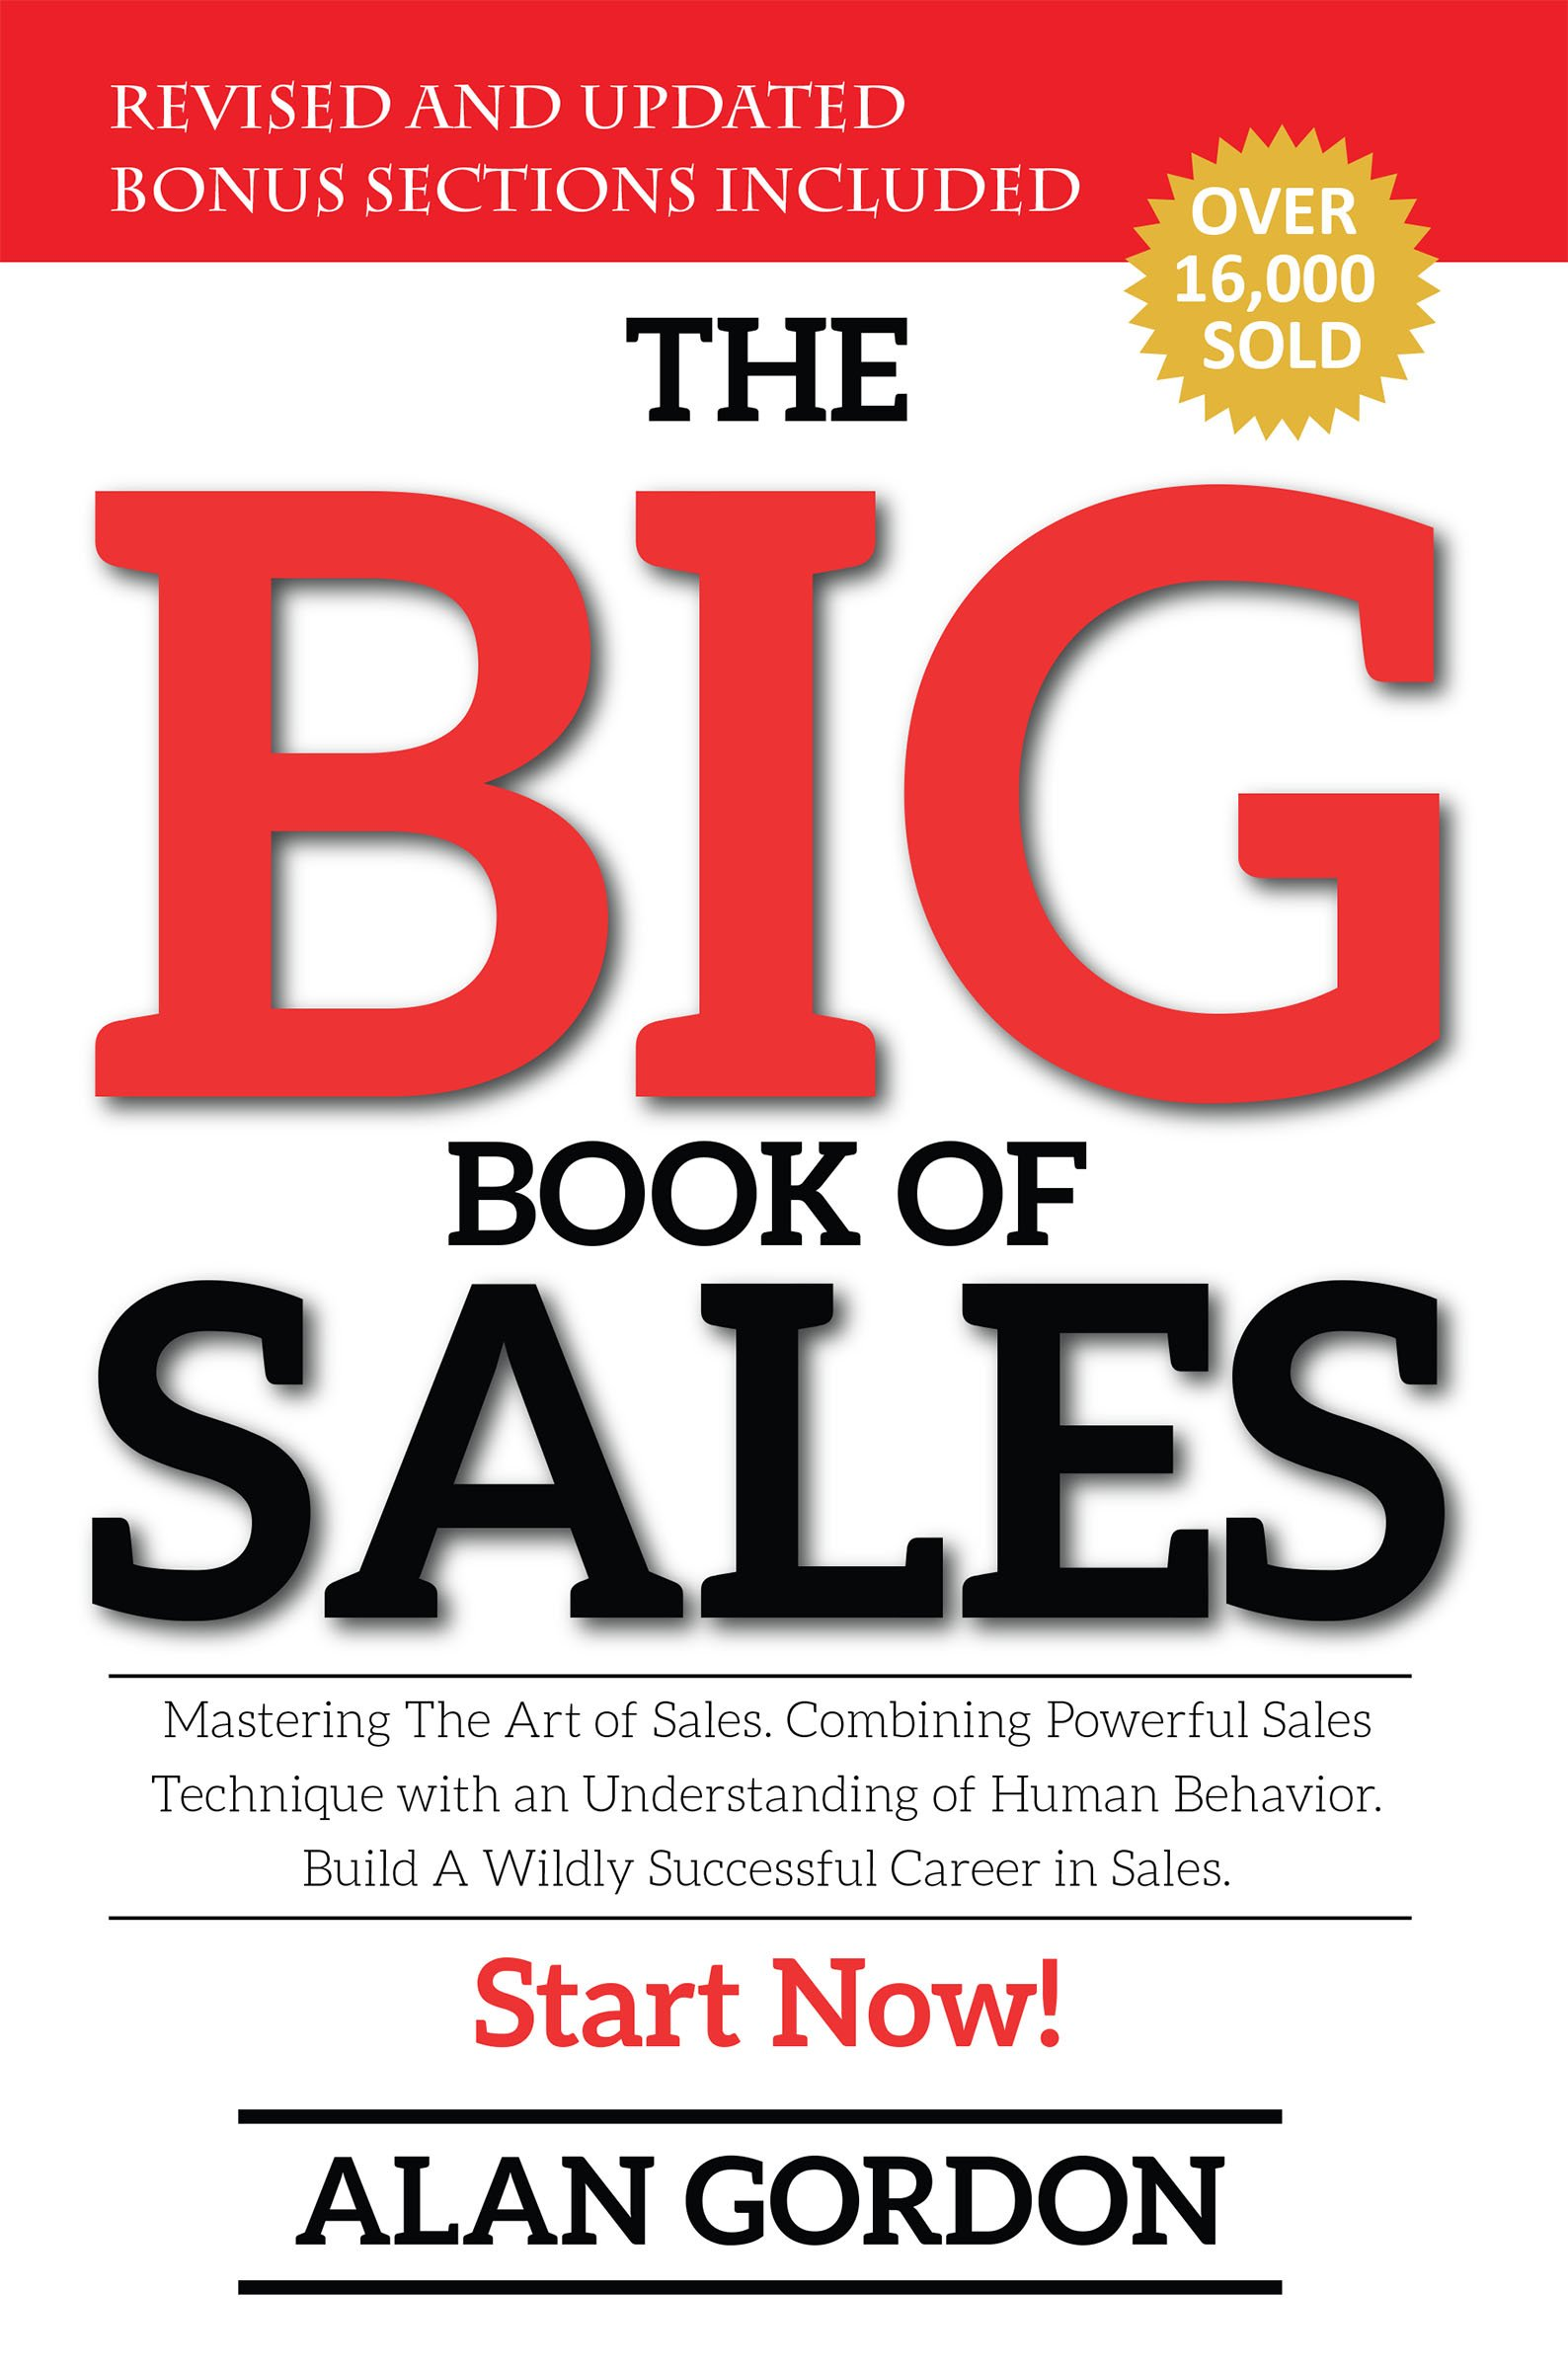 The Big Book of Sales: Mastering The Art of Sales.  Combining powerful sales technique with an understanding of human behavior.  Build a wildly successful career in sales.  Start now!